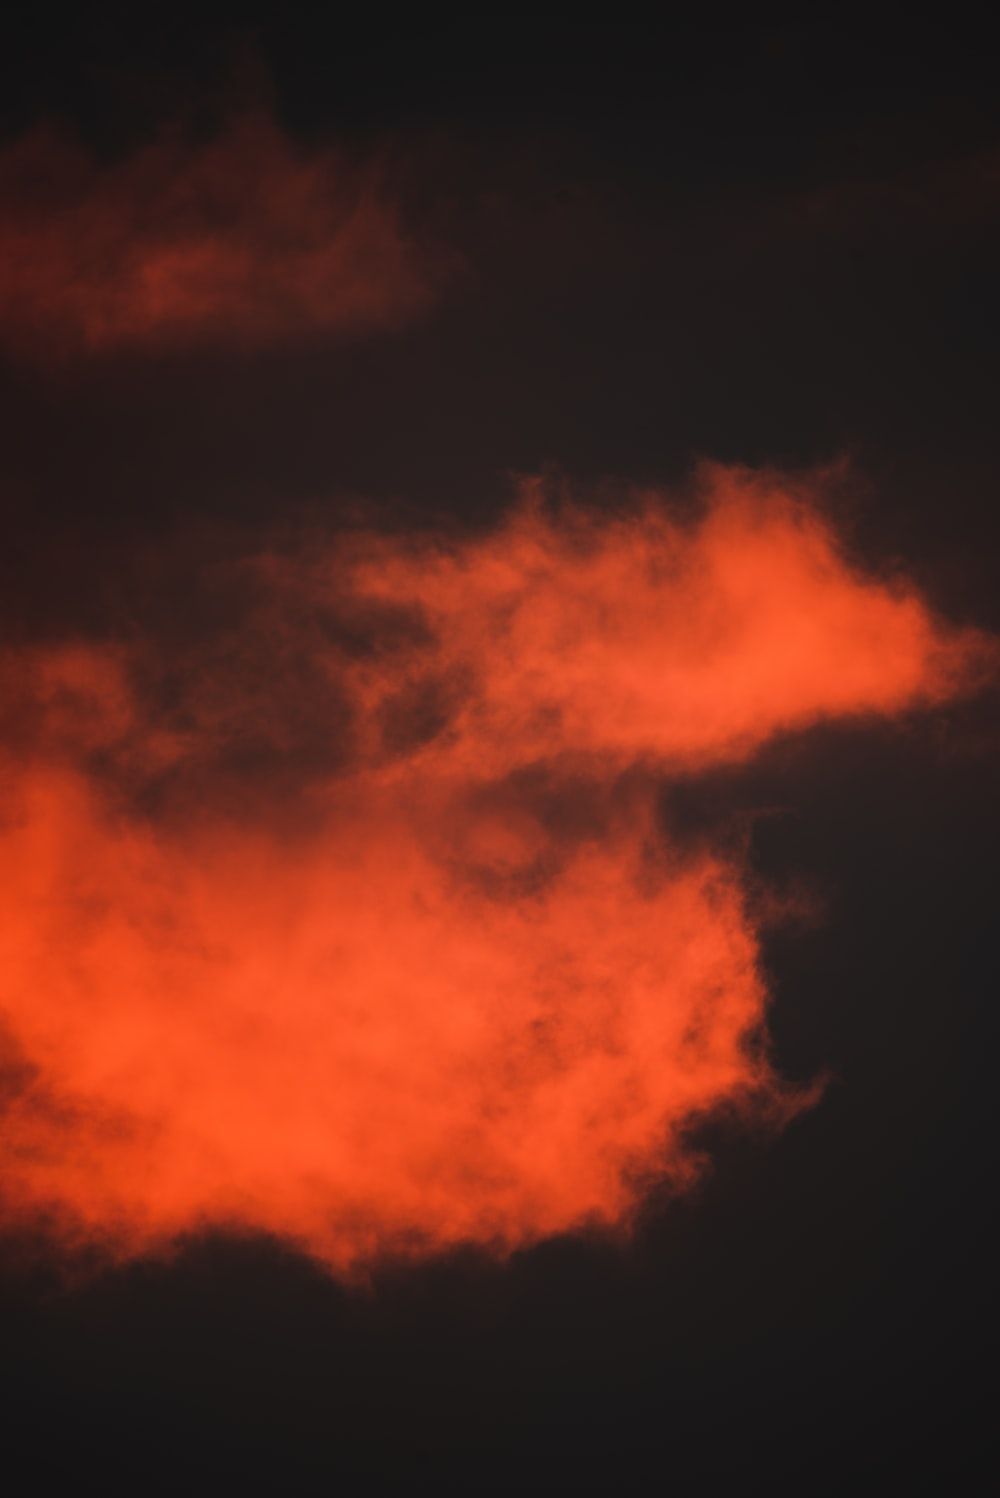 orange and black clouds during night time